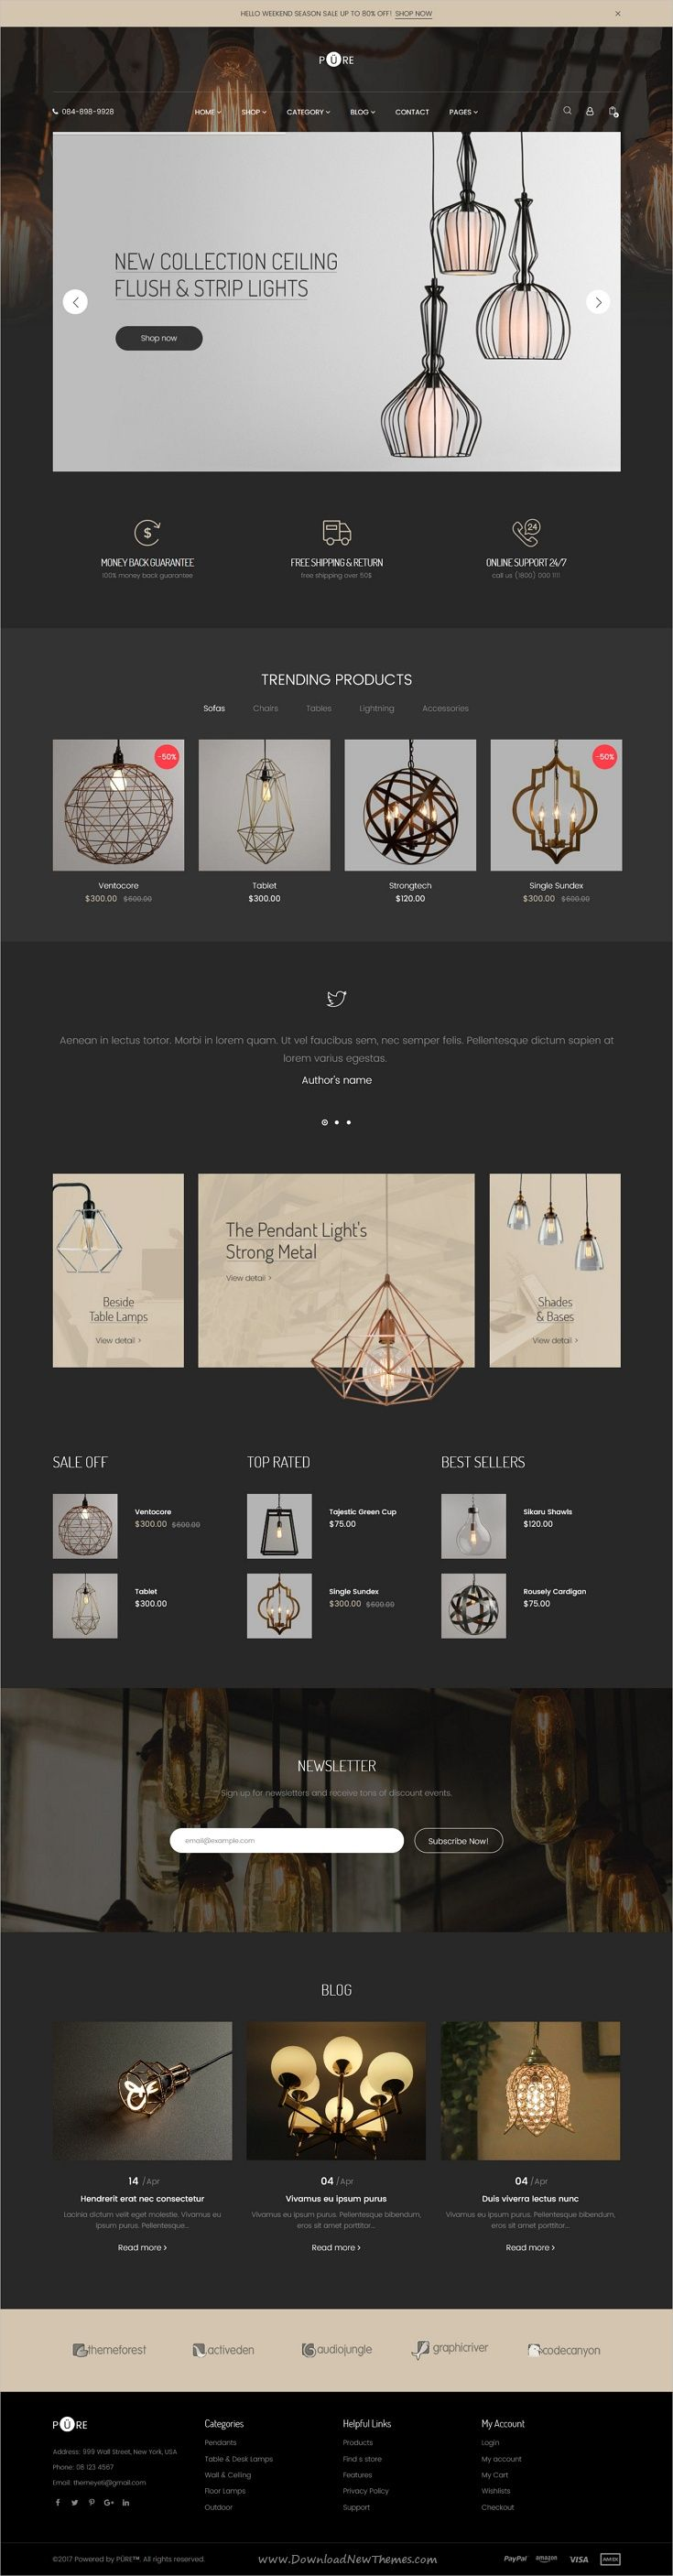 Shopie is stylish and minimal design responsive #Shopify theme for stunning #light store #eCommerce website with 27+ multipurpose niche homepage layouts download now..